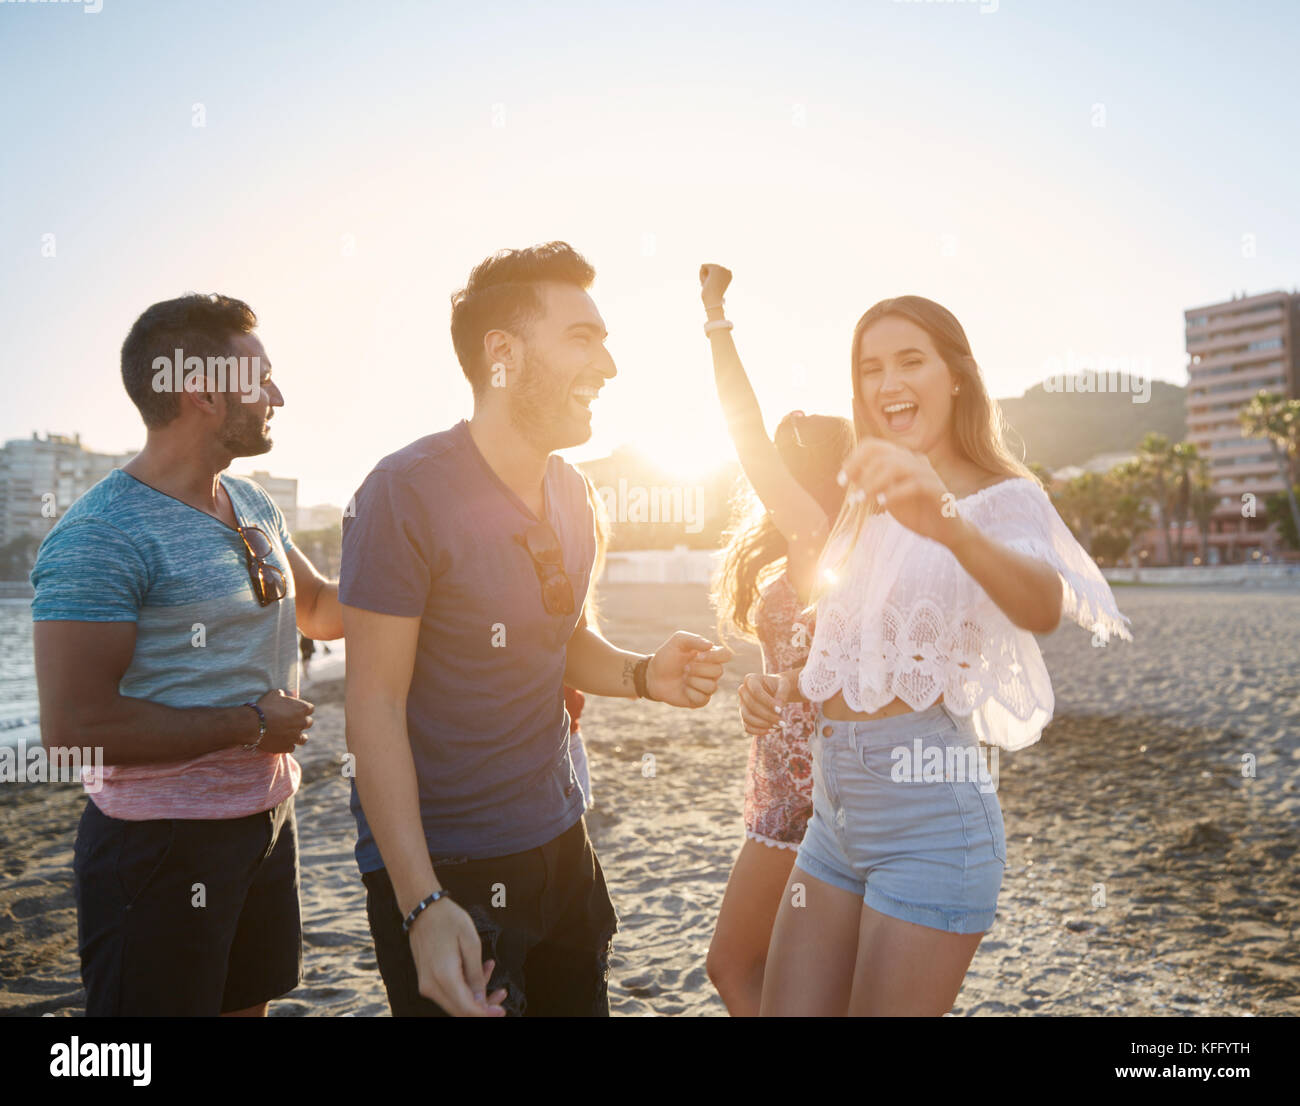 Portrait of young pretty woman dancing with friends on beach - Stock Image